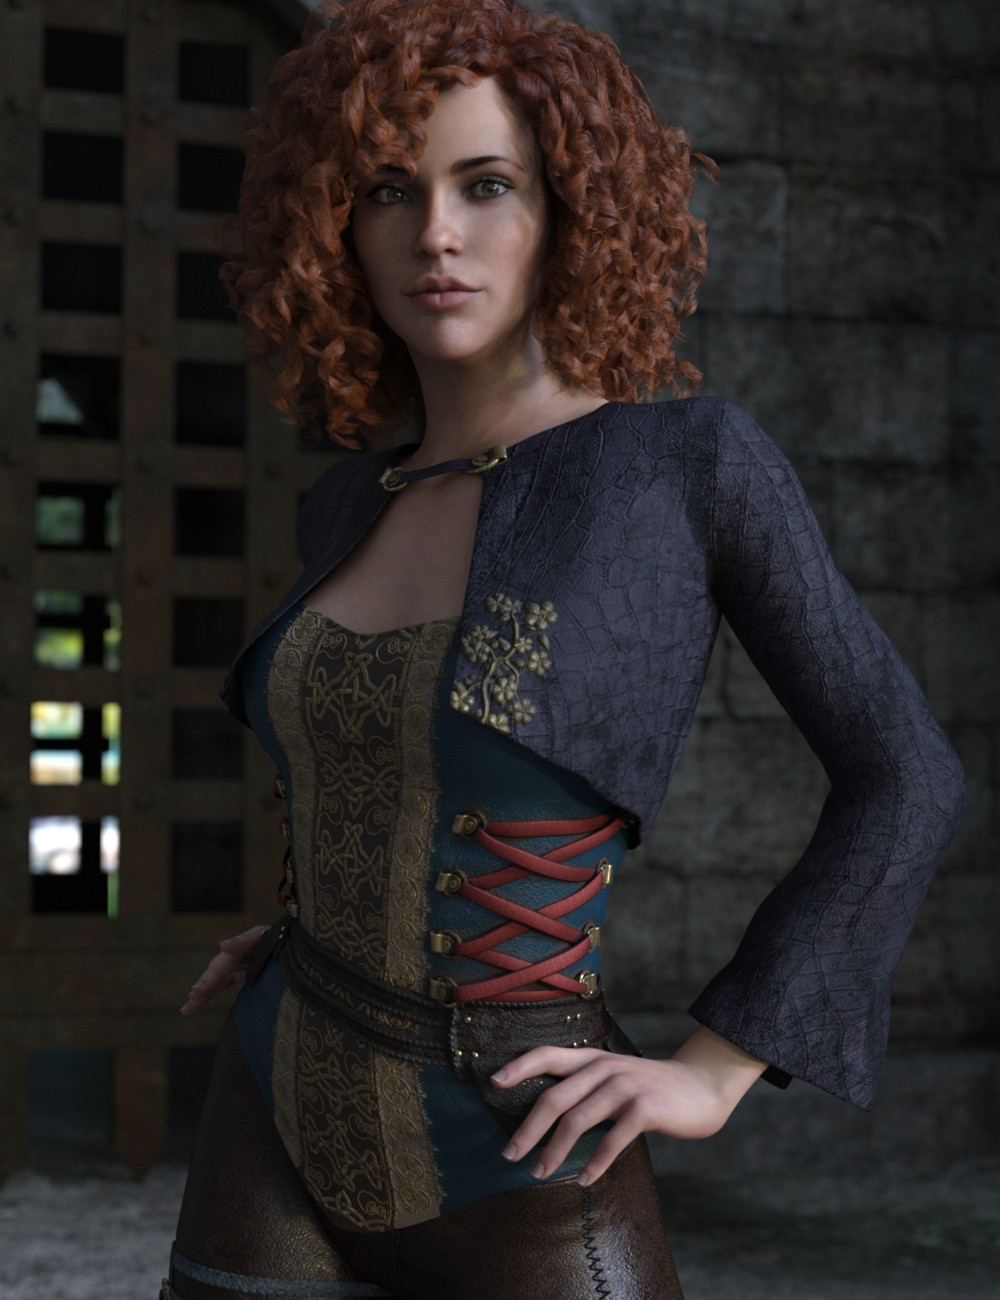 Red headed woman wearing Soul Keeper Outfit by Moonscape Graphics and Sade for Daz3D